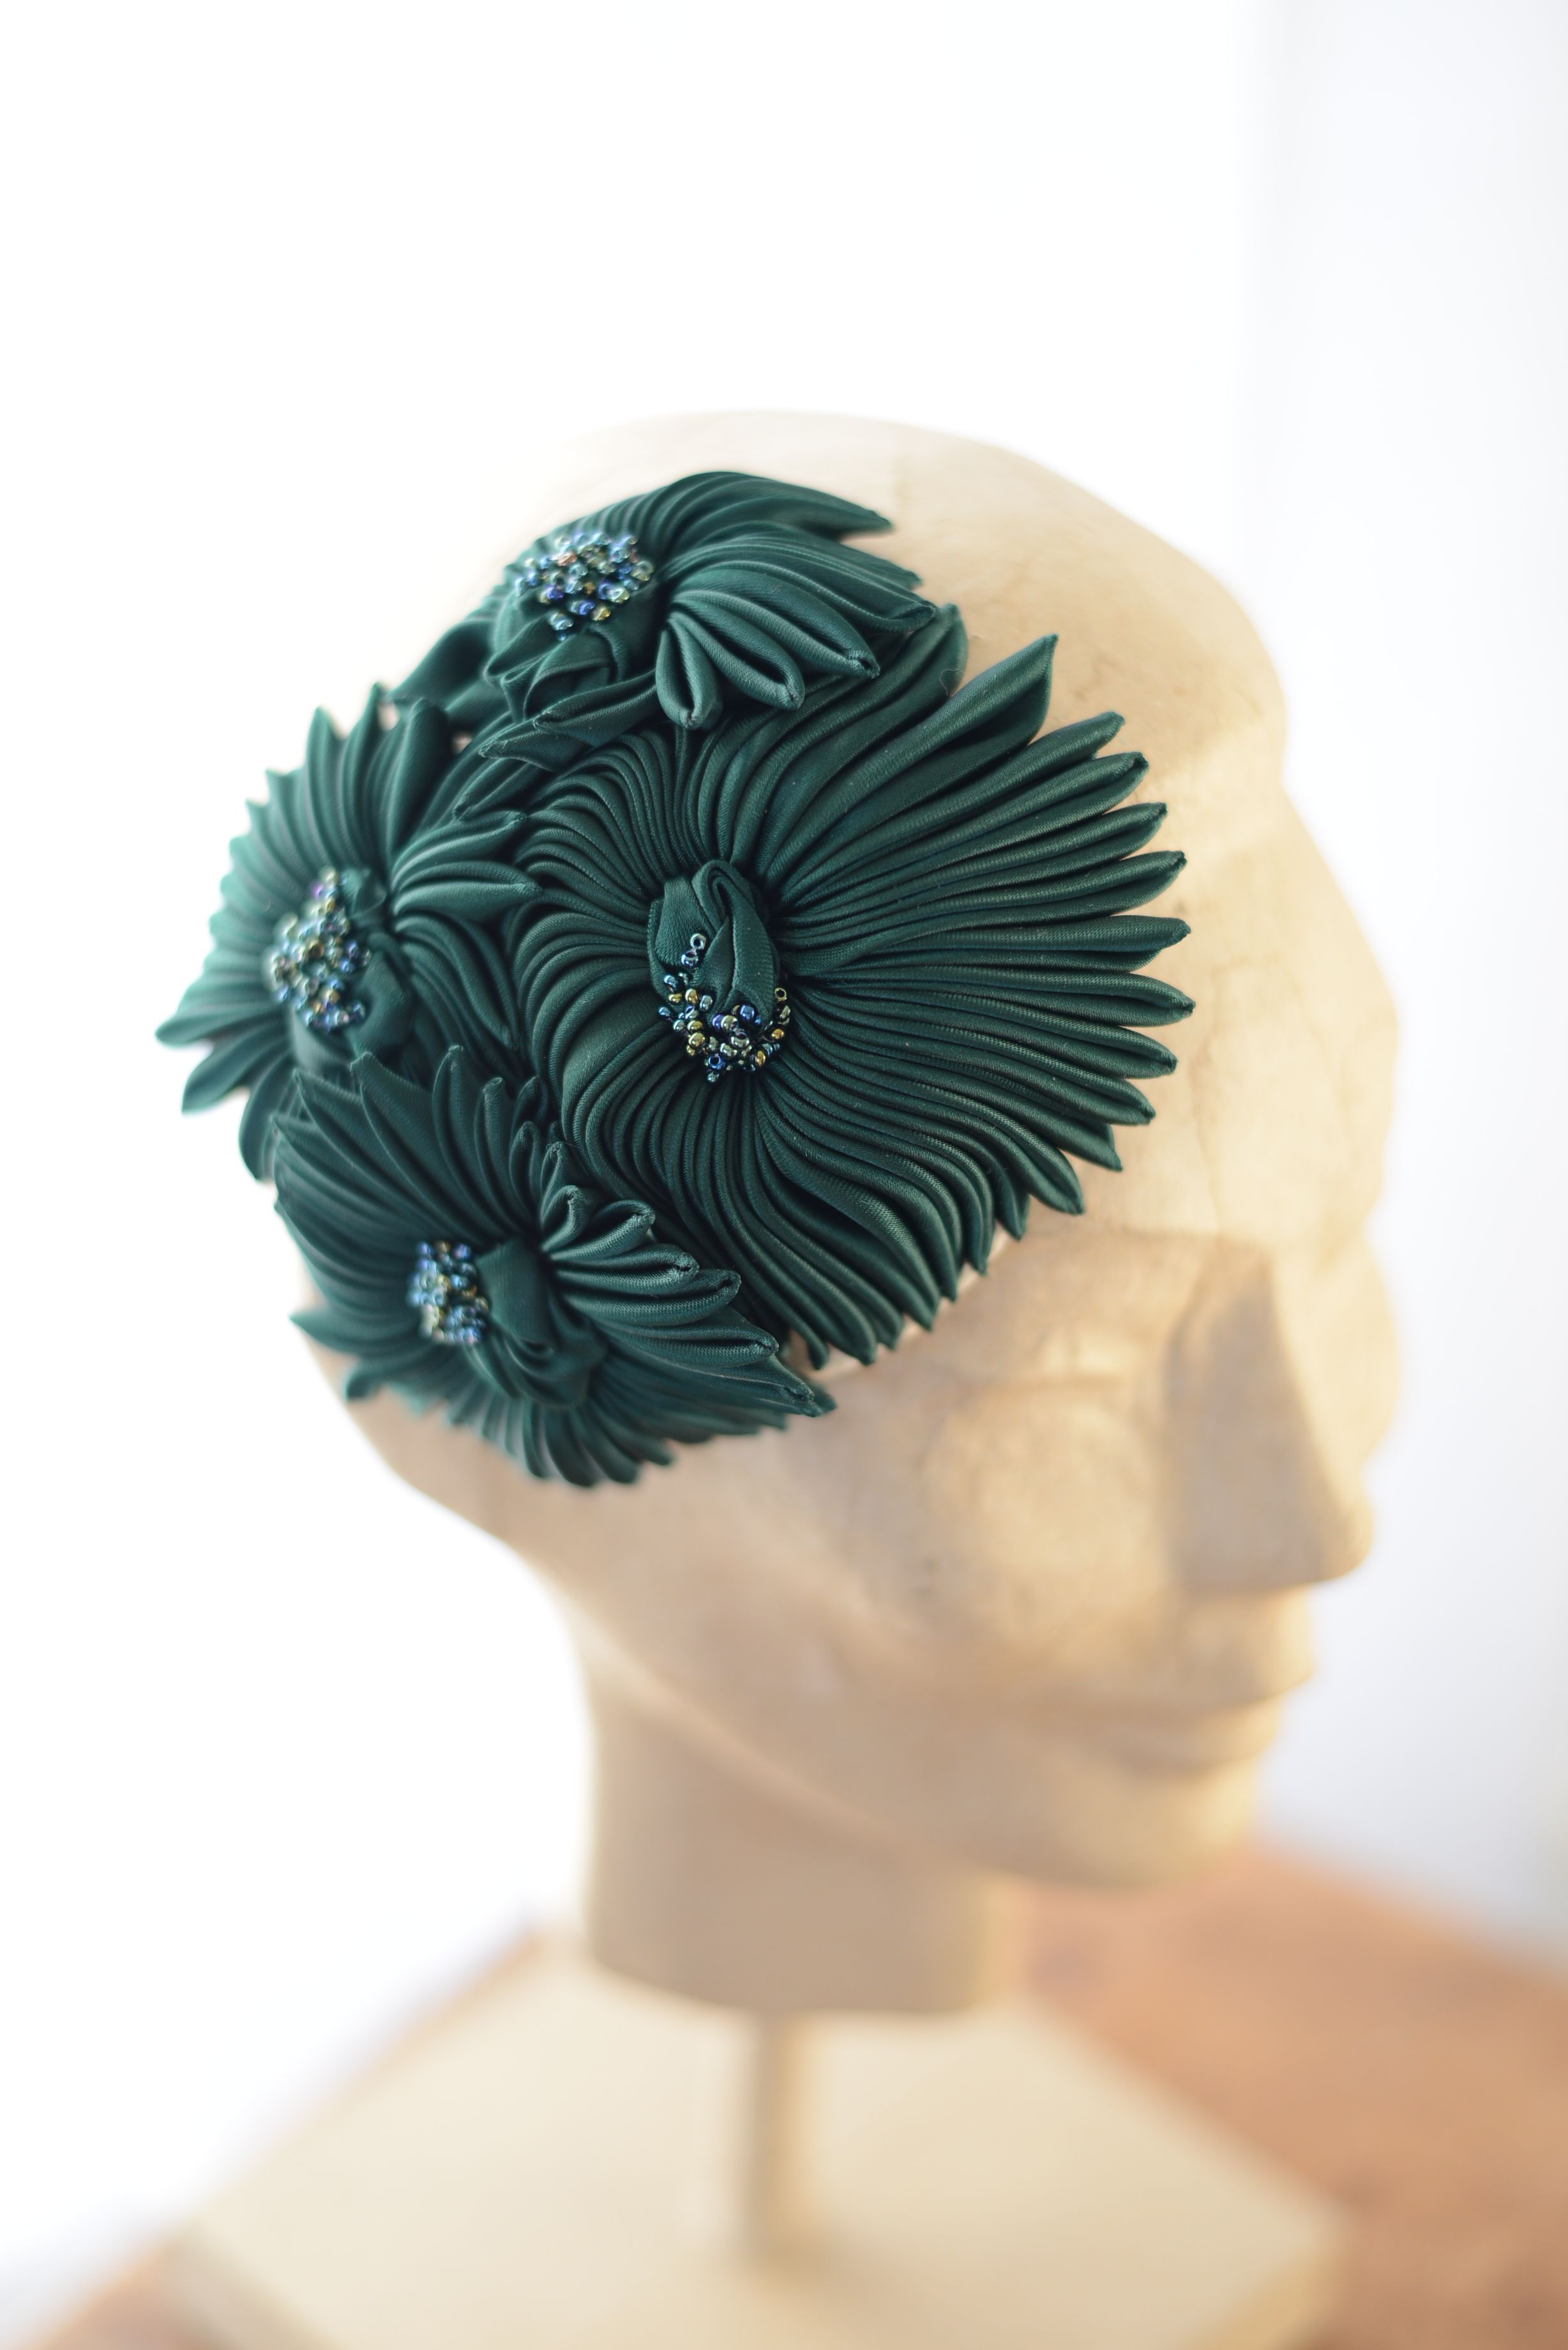 Couture headpiece from www.parantparant.se